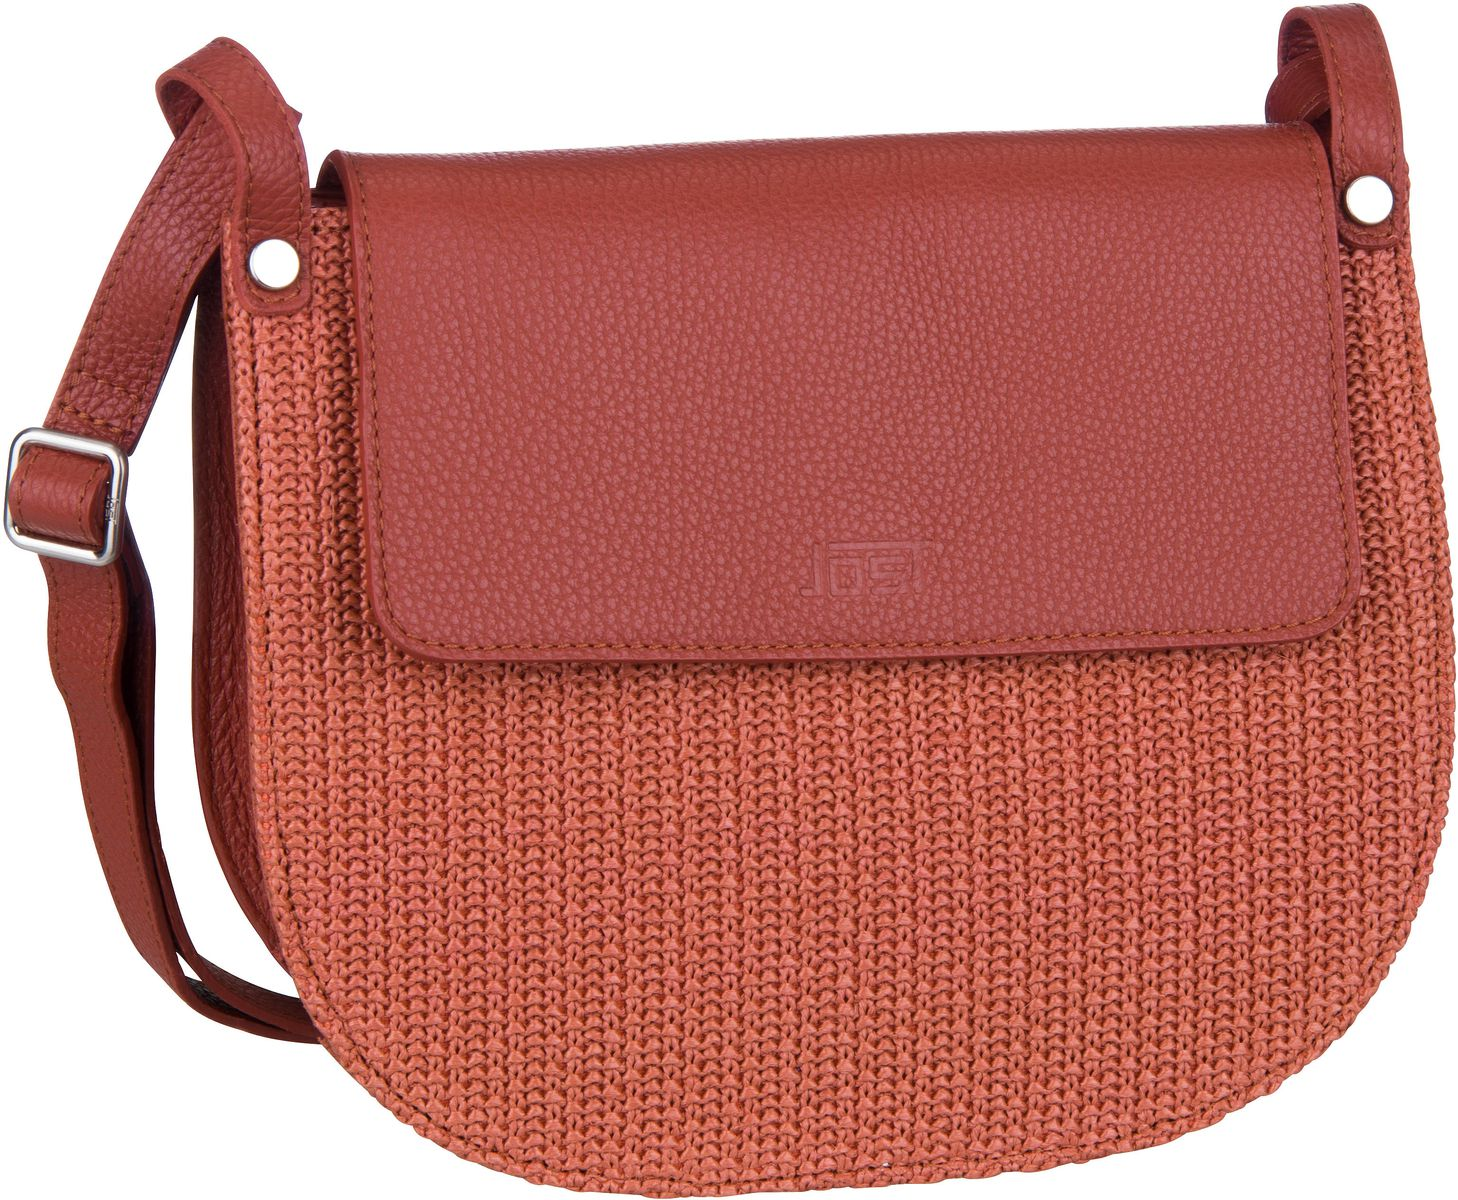 Umhängetasche Ratu 3548 Shoulder Bag k